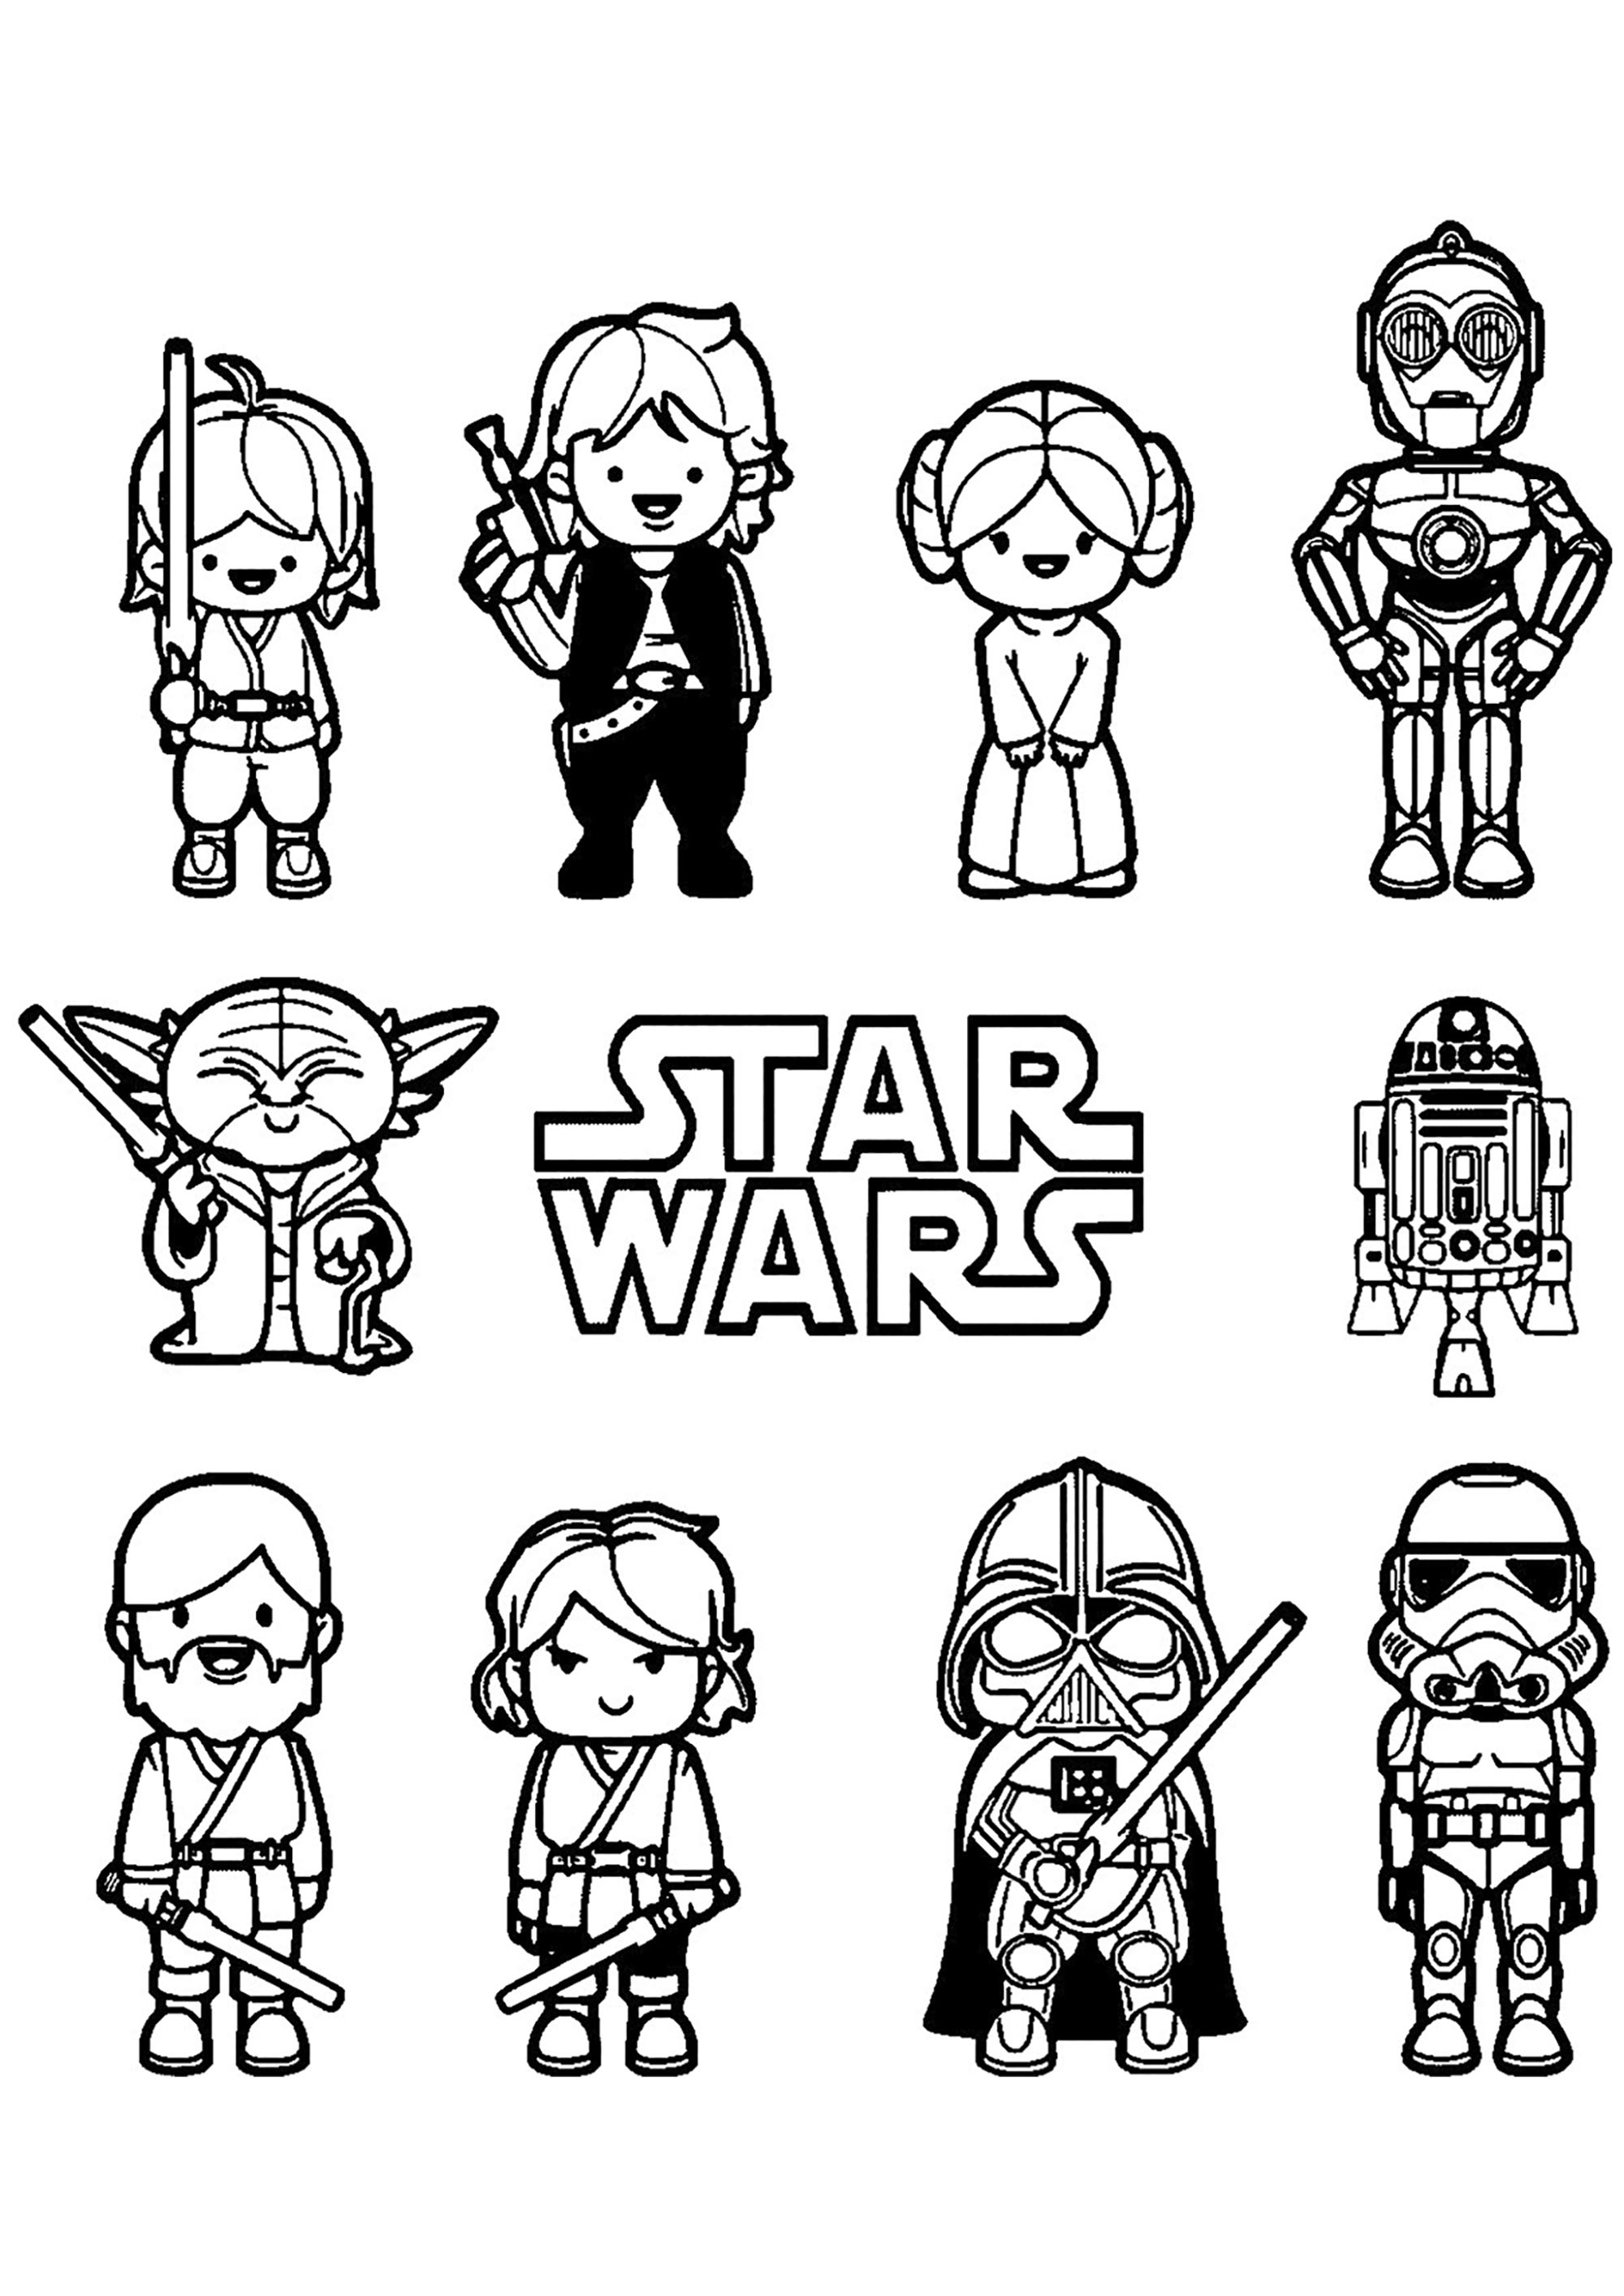 star wars colouring for kids star wars to color for children star wars kids coloring kids colouring for wars star